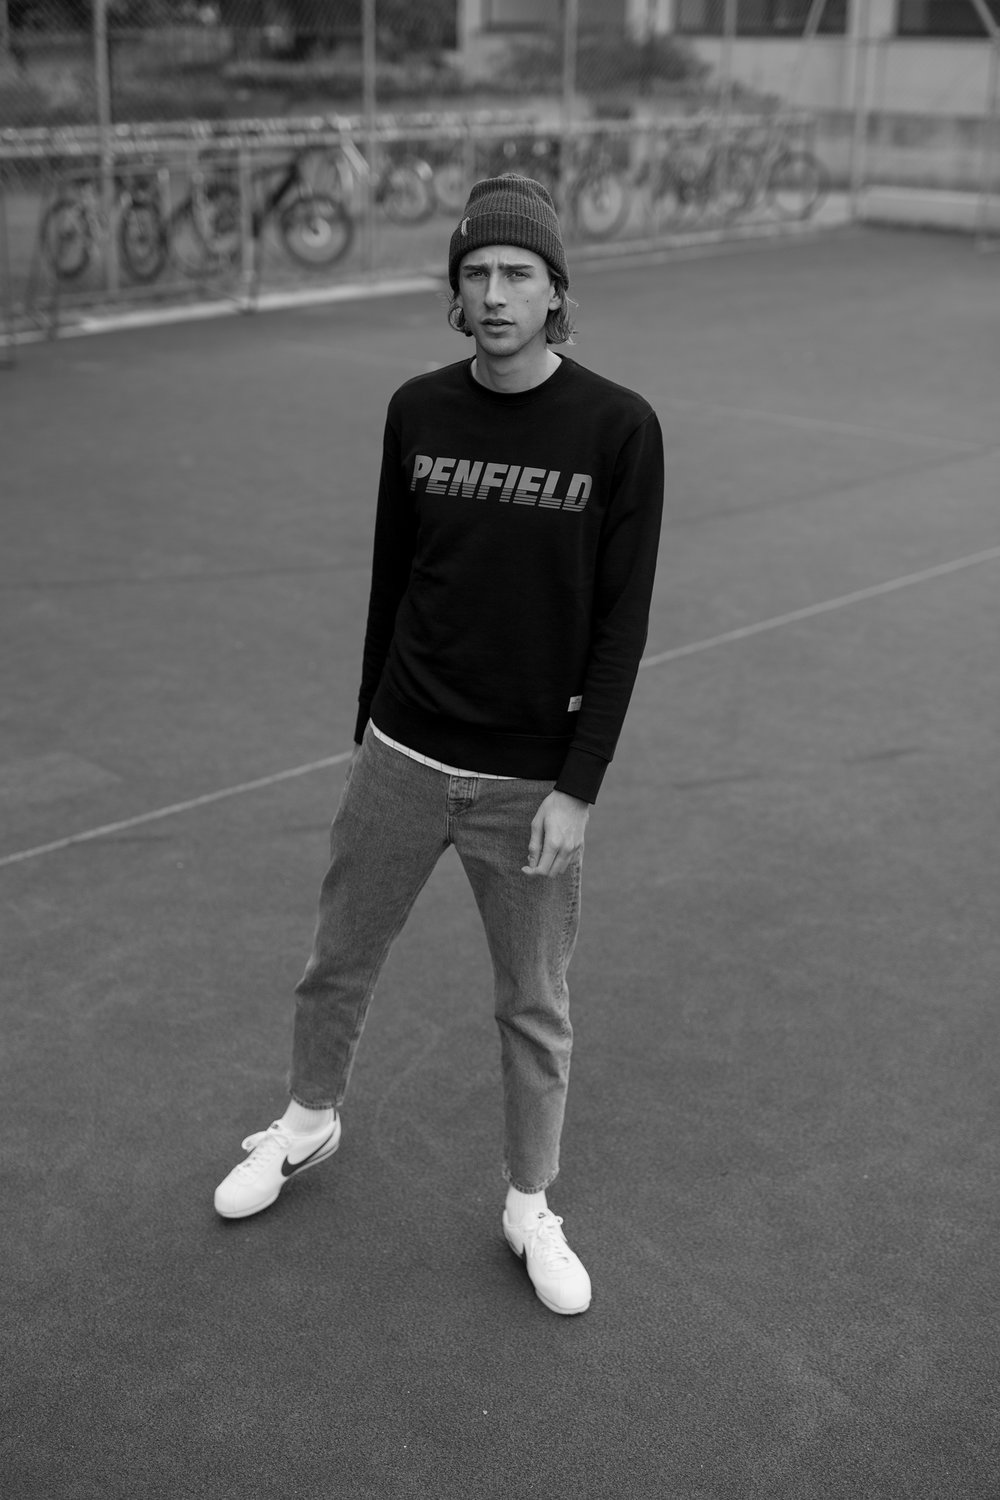 Oliver is wearing a Penfield sweatshirt, a pair of Topman jeans and Nike 'Cortez' sneakers.